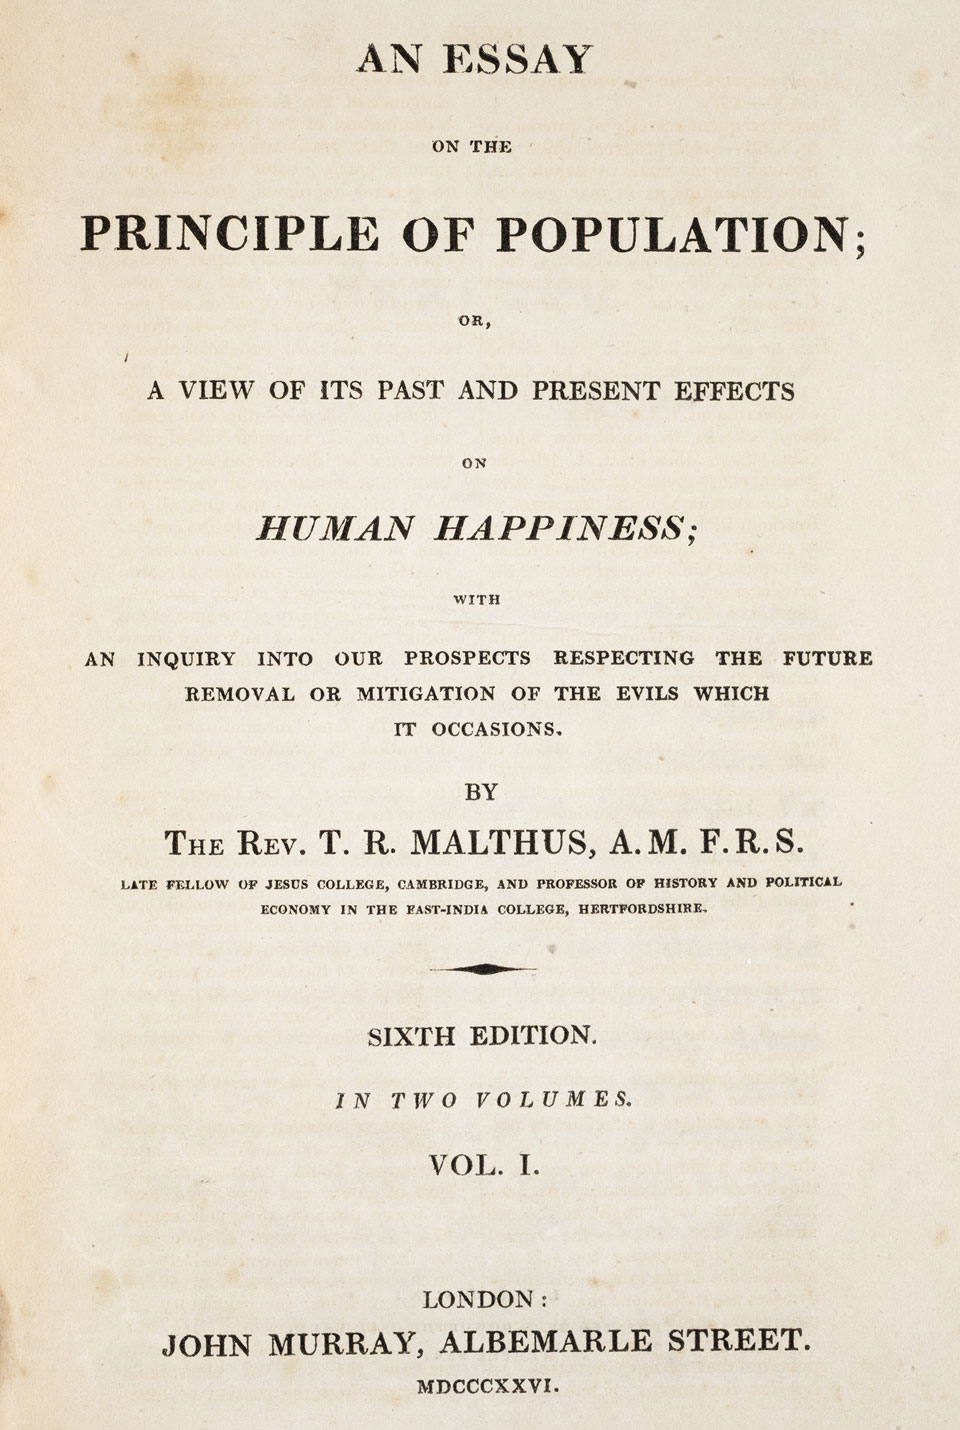 malthus- an essay on the principle of population sparknotes Food politics – robert paarlberg  food production and population growth • robert malthus's essay on the principle of population and the old and new malthusians.